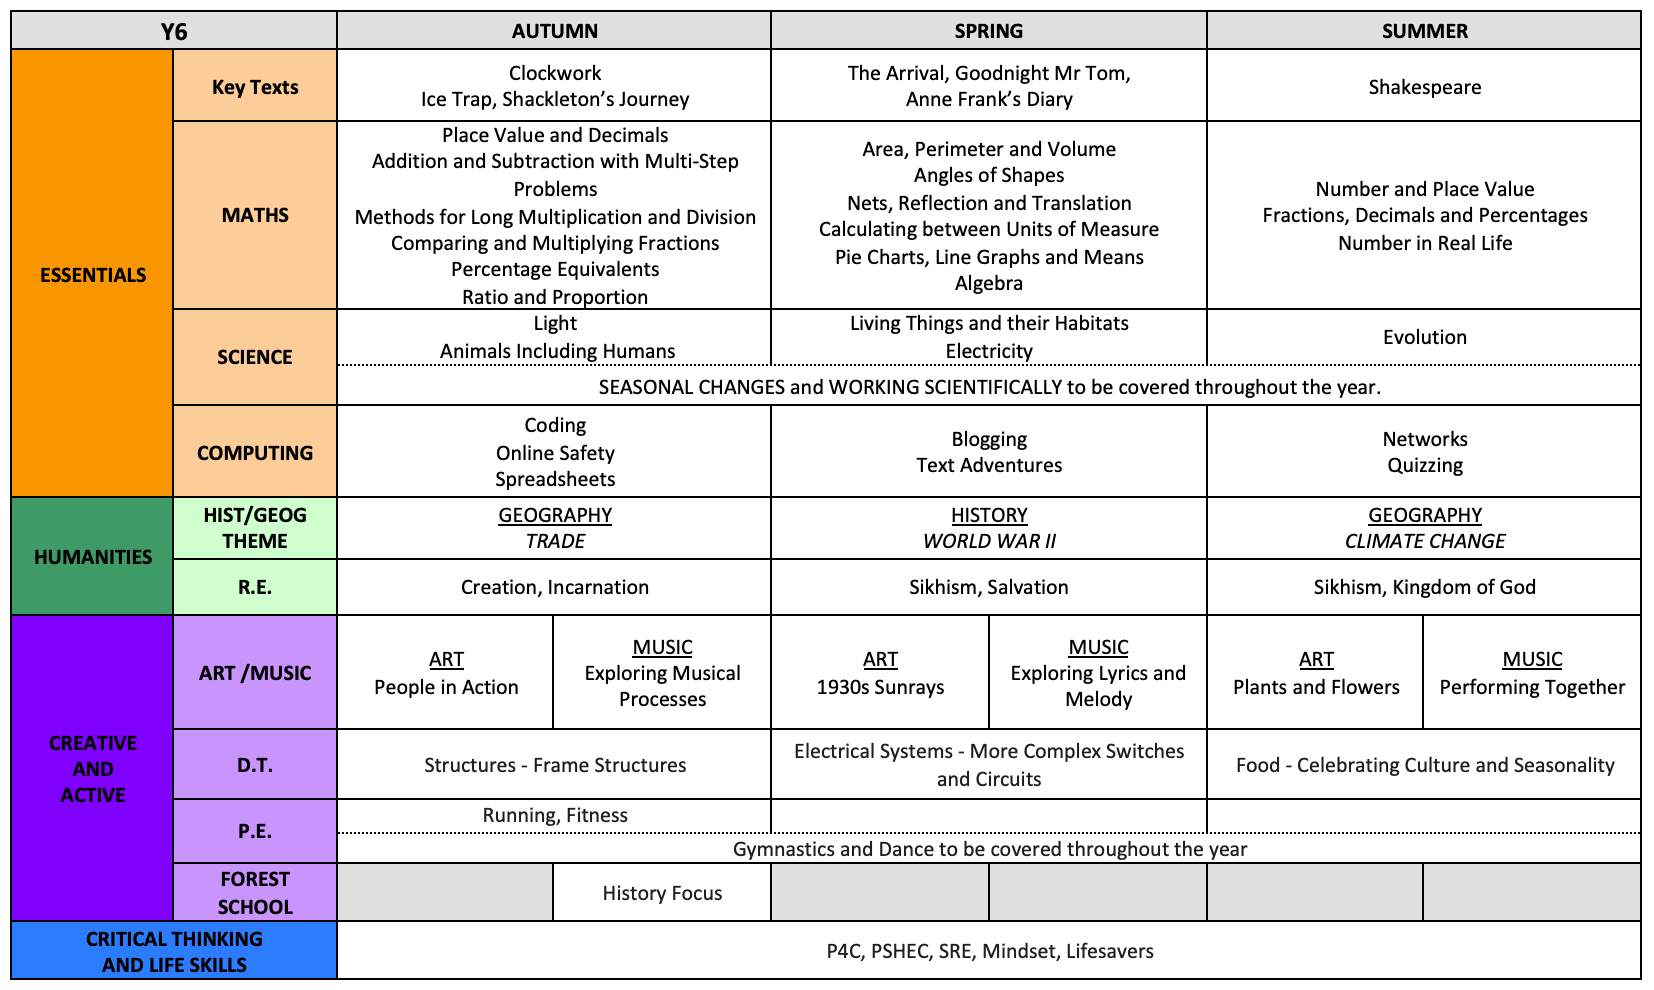 Y6 Curriculum Overview